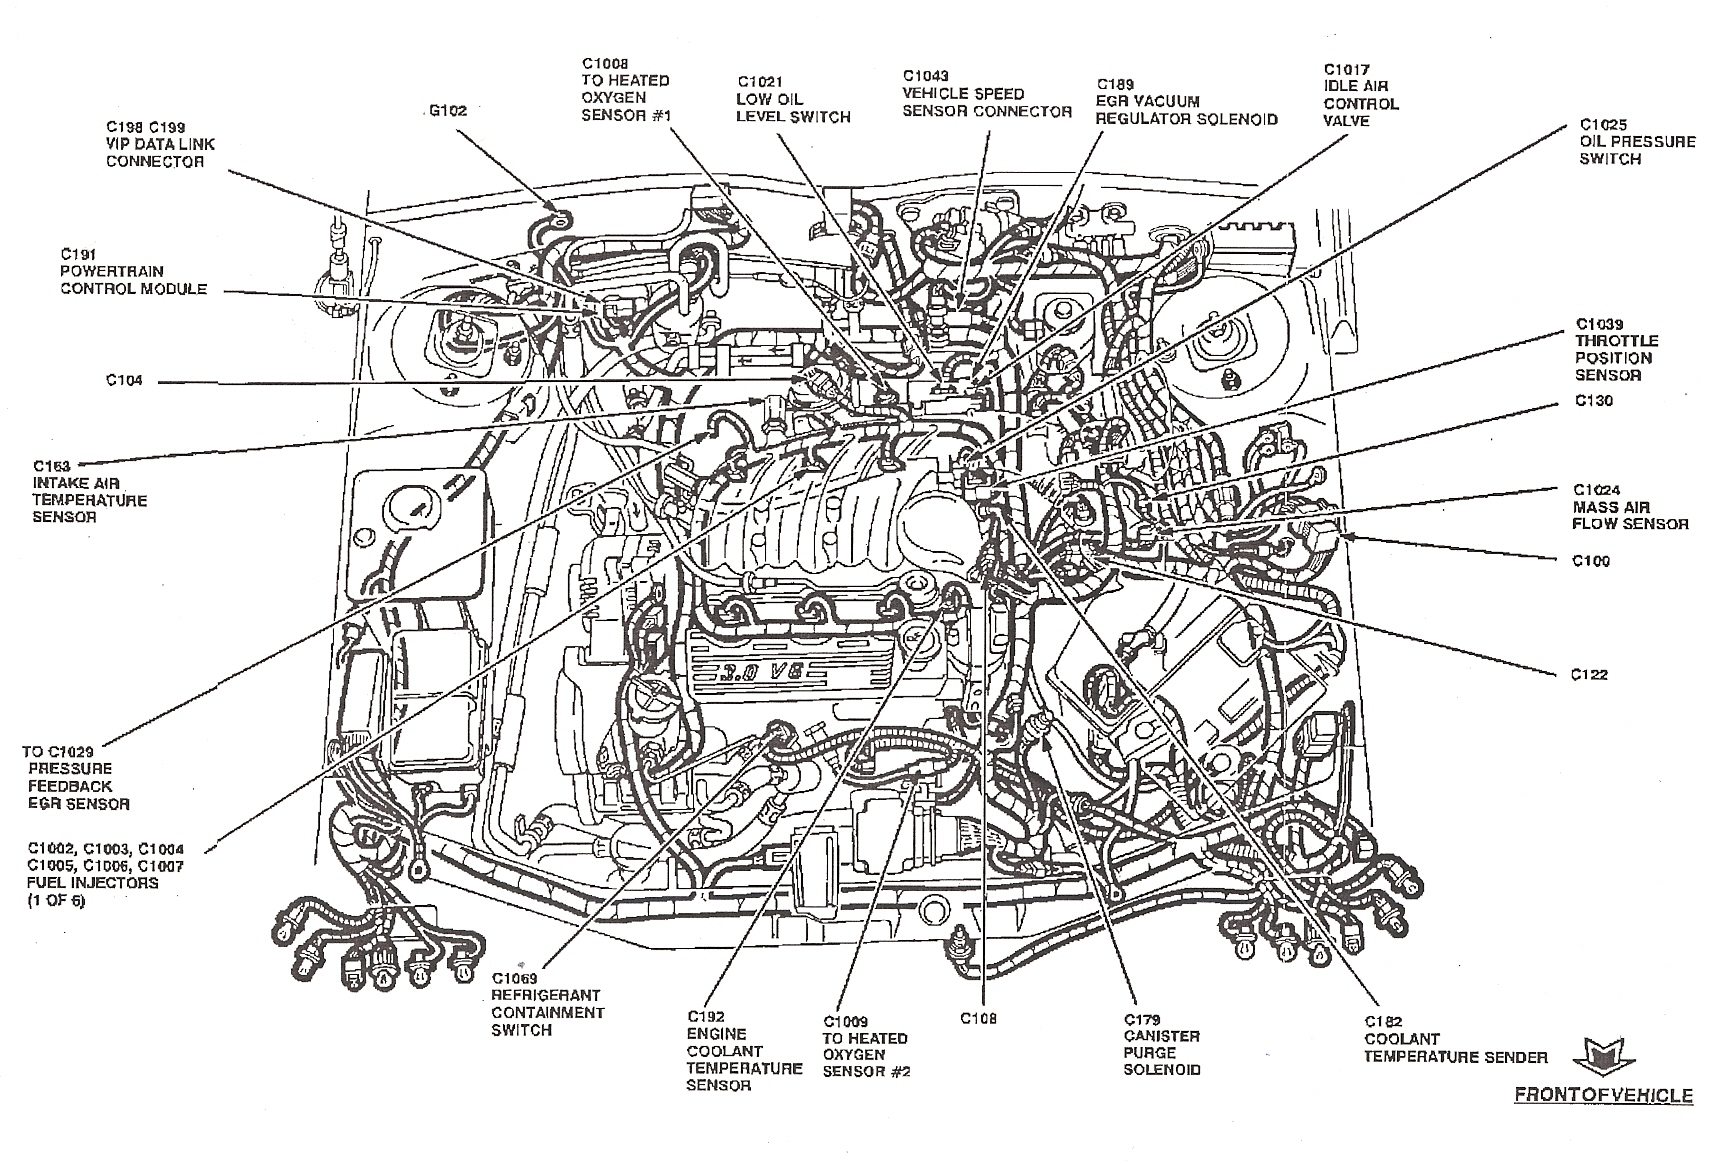 2013 ford f 250 engine diagram wiring library diagram box2013 ford focus engine diagram wiring library diagram box 2017 ford f 250 2013 ford f 250 engine diagram